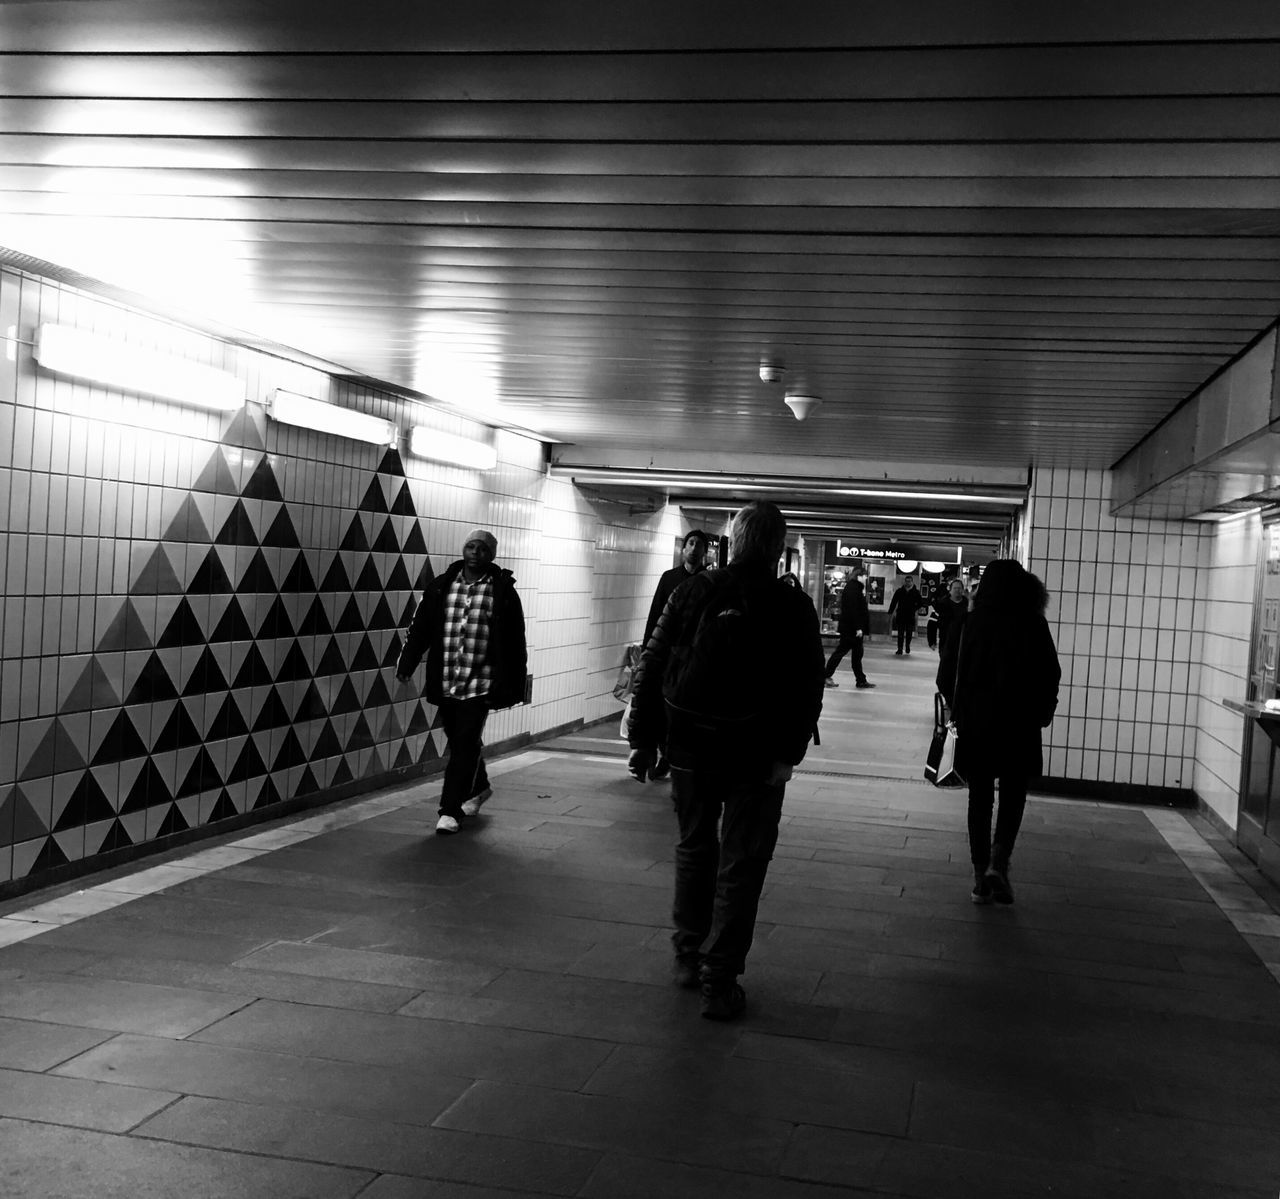 'Going Underground' Real People Men Indoors  Subway Station Illuminated Full Length Rear View Tiled Wall Tunnel People Adult Day Urbexphotography URBex Oslo Quickshots B&W Urbex Winter2016 ❄ Oslo, Norway Winter Has Come KariJosefiné✨